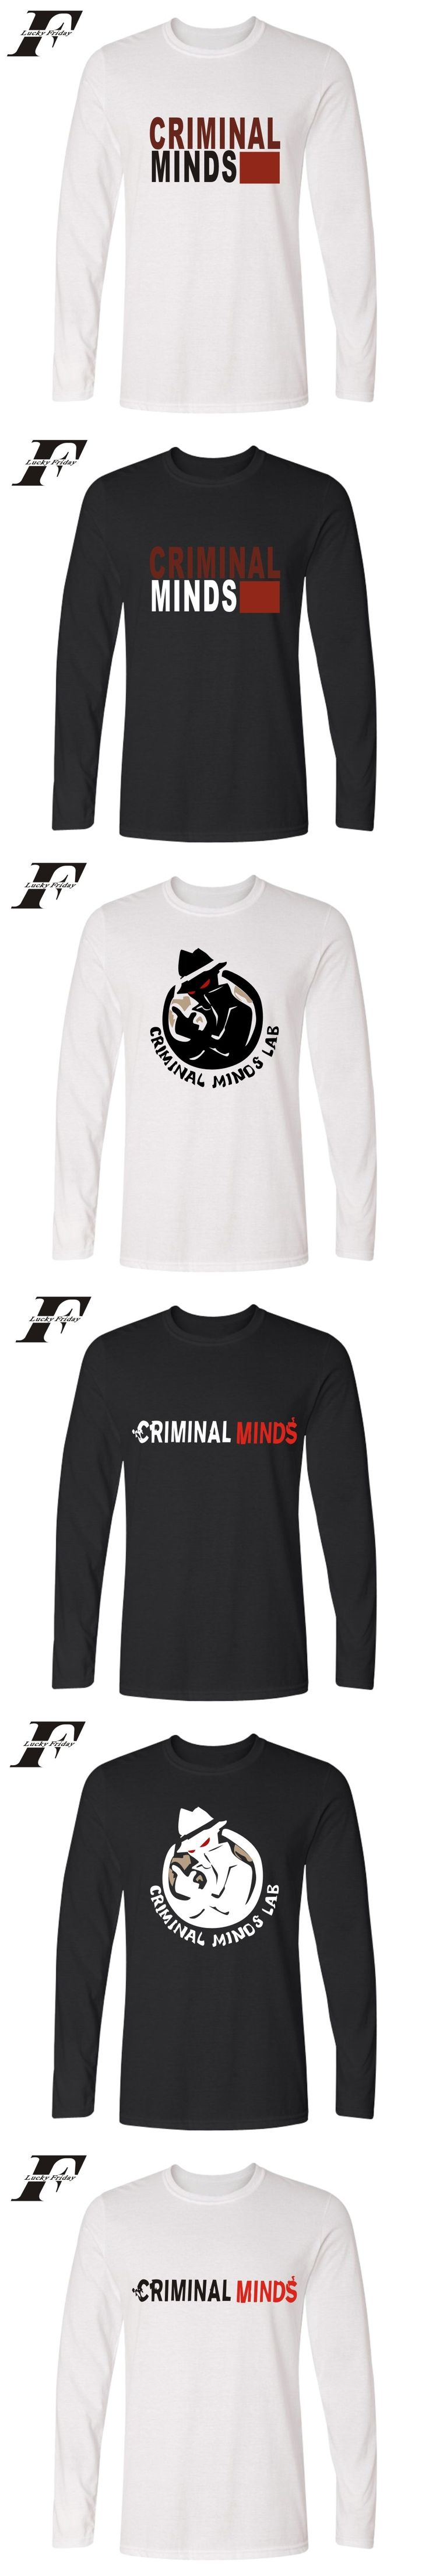 LUCKYFRIDAYF funny t shirts Criminal Minds Long Sleeve fitness Fashion T shirt men Amrican TV Shows cotton soft Tee shirt